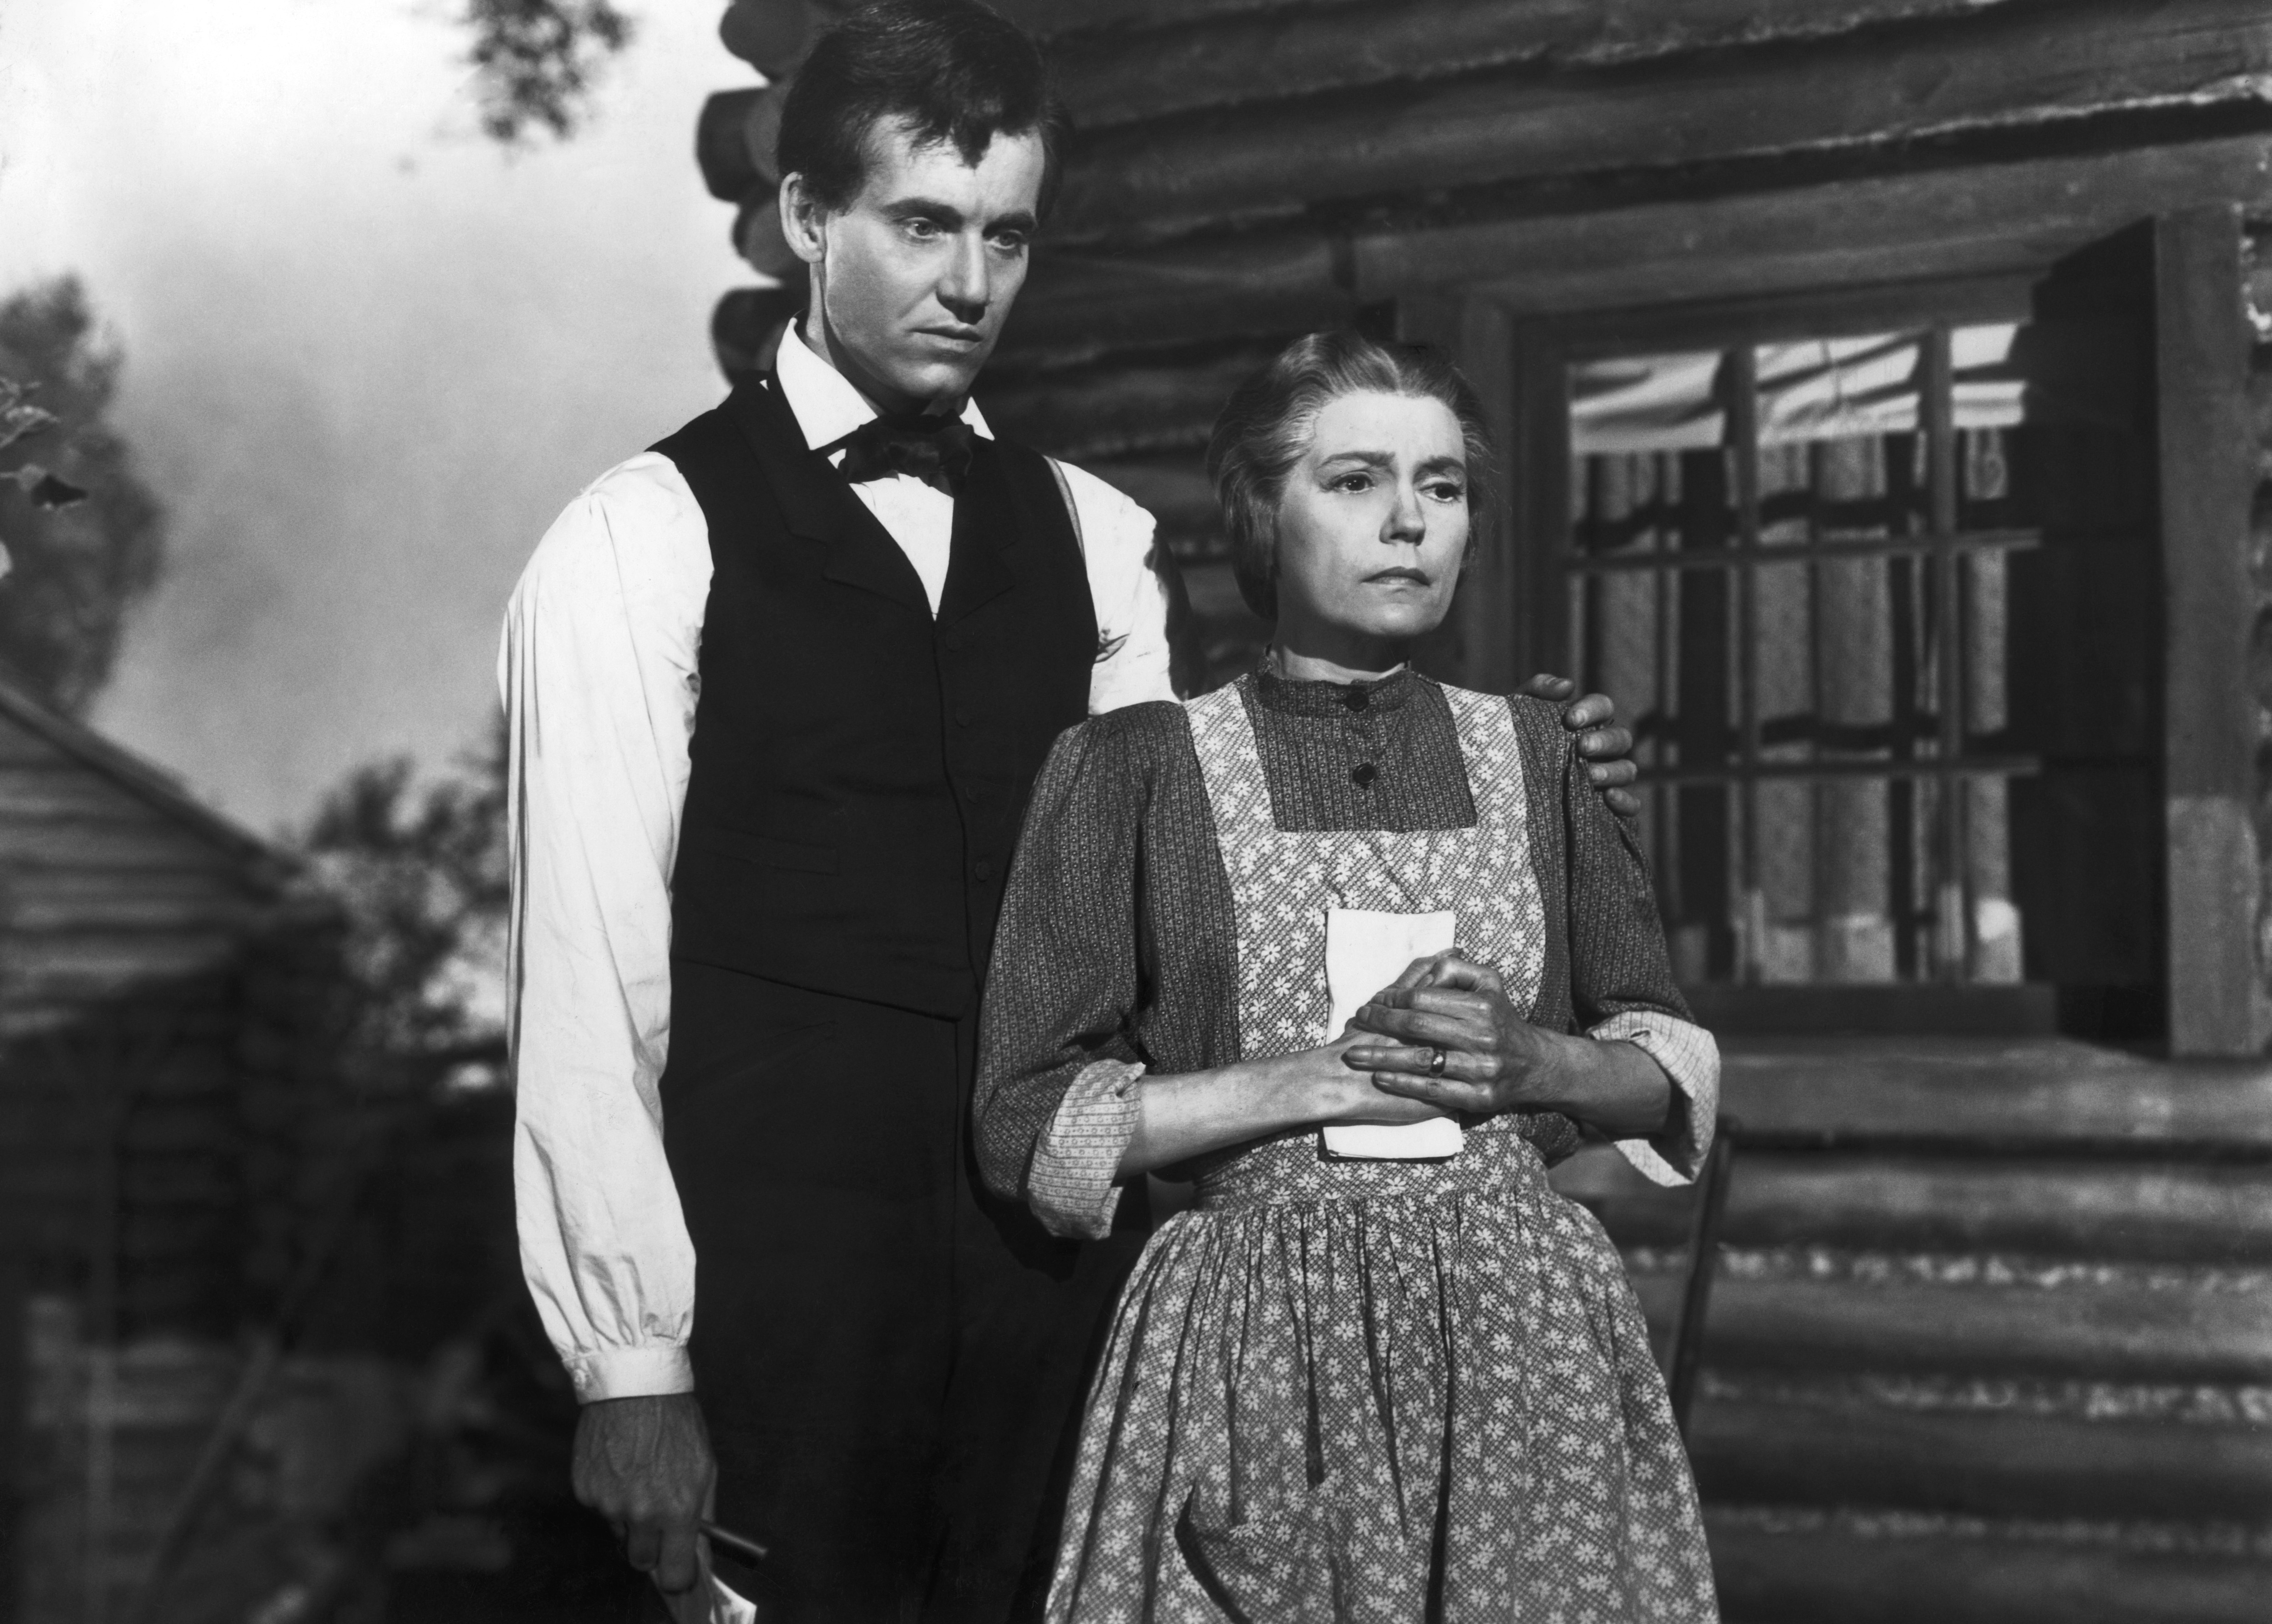 Henry Fonda and Alice Brady in Young Mr. Lincoln (1939)